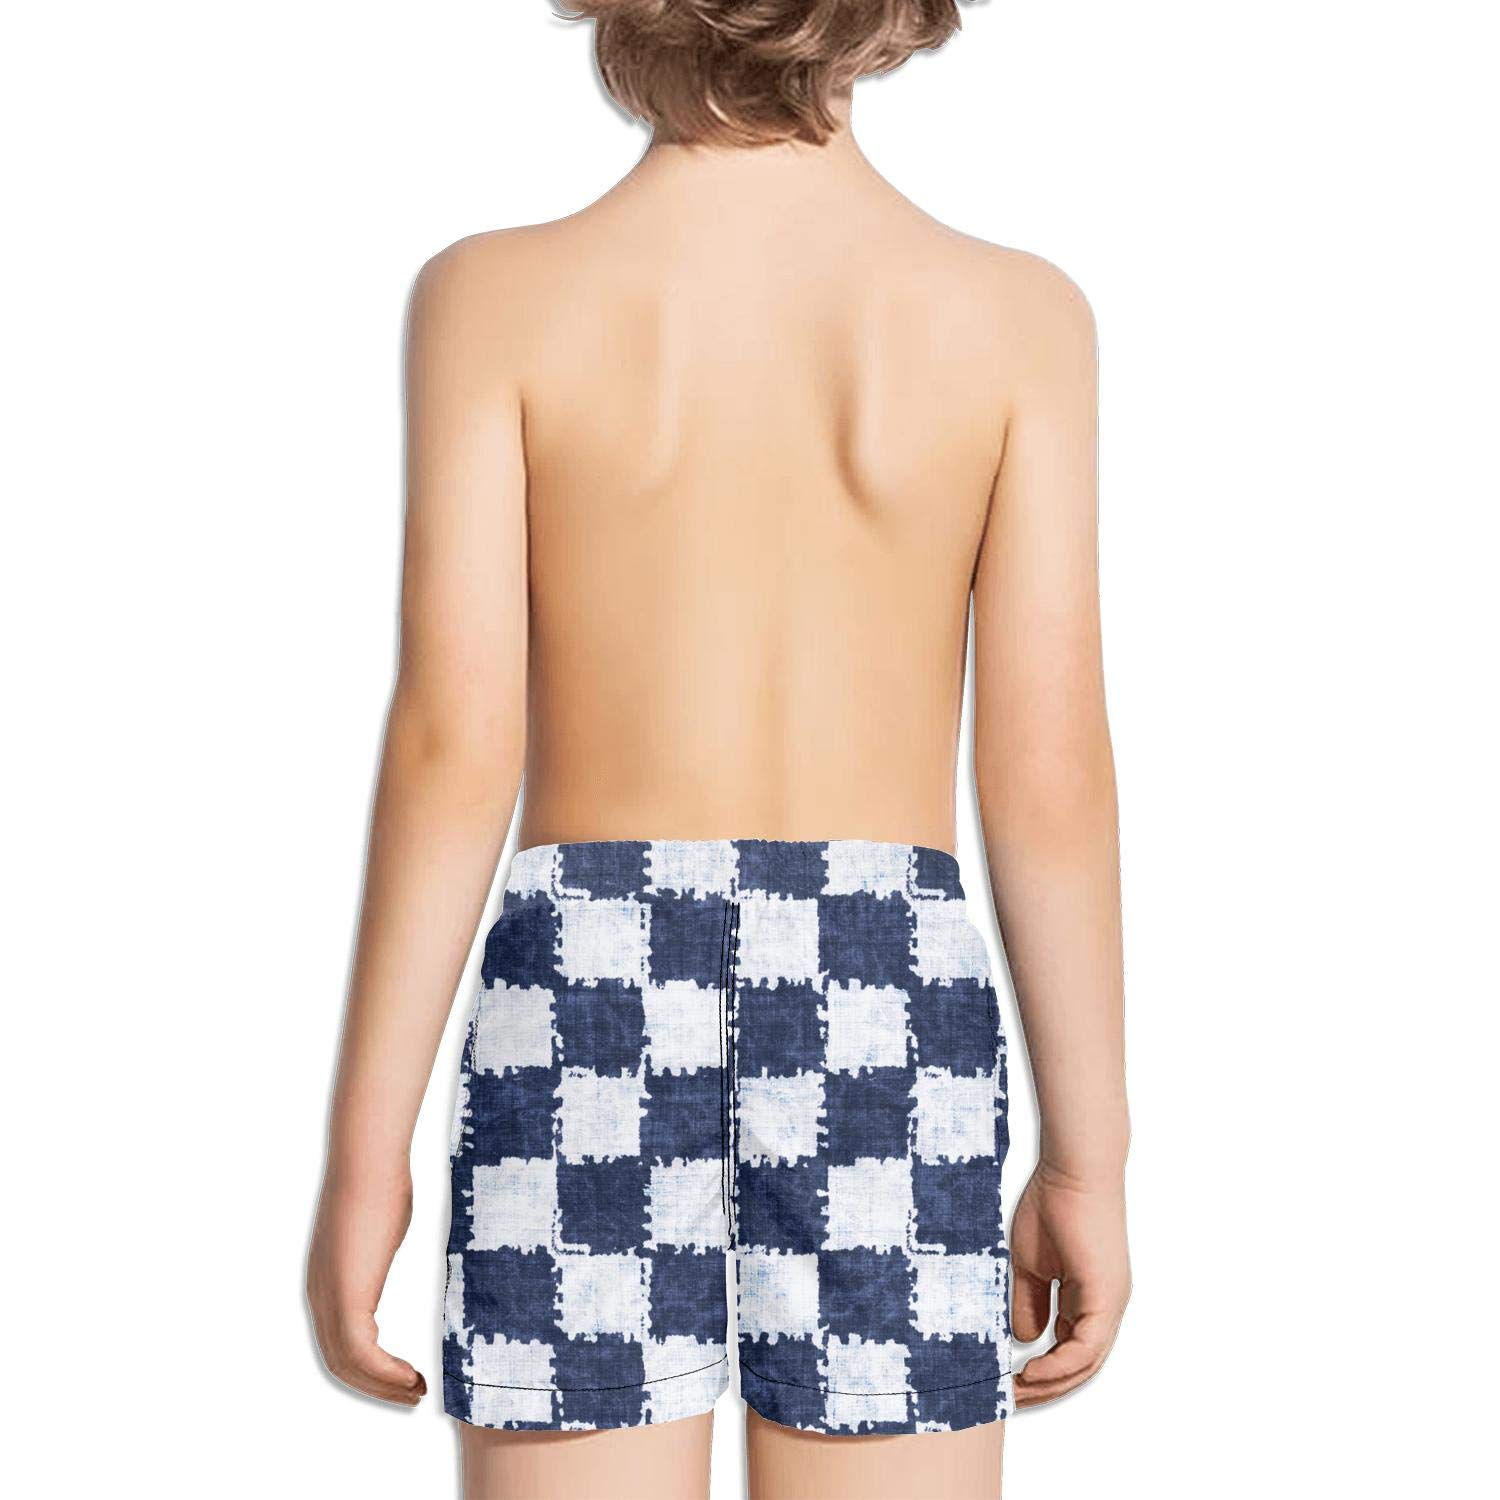 Checkerboard Squares Mottled Shades Indigo White Active Fully Lined Side Split Swim Shorts